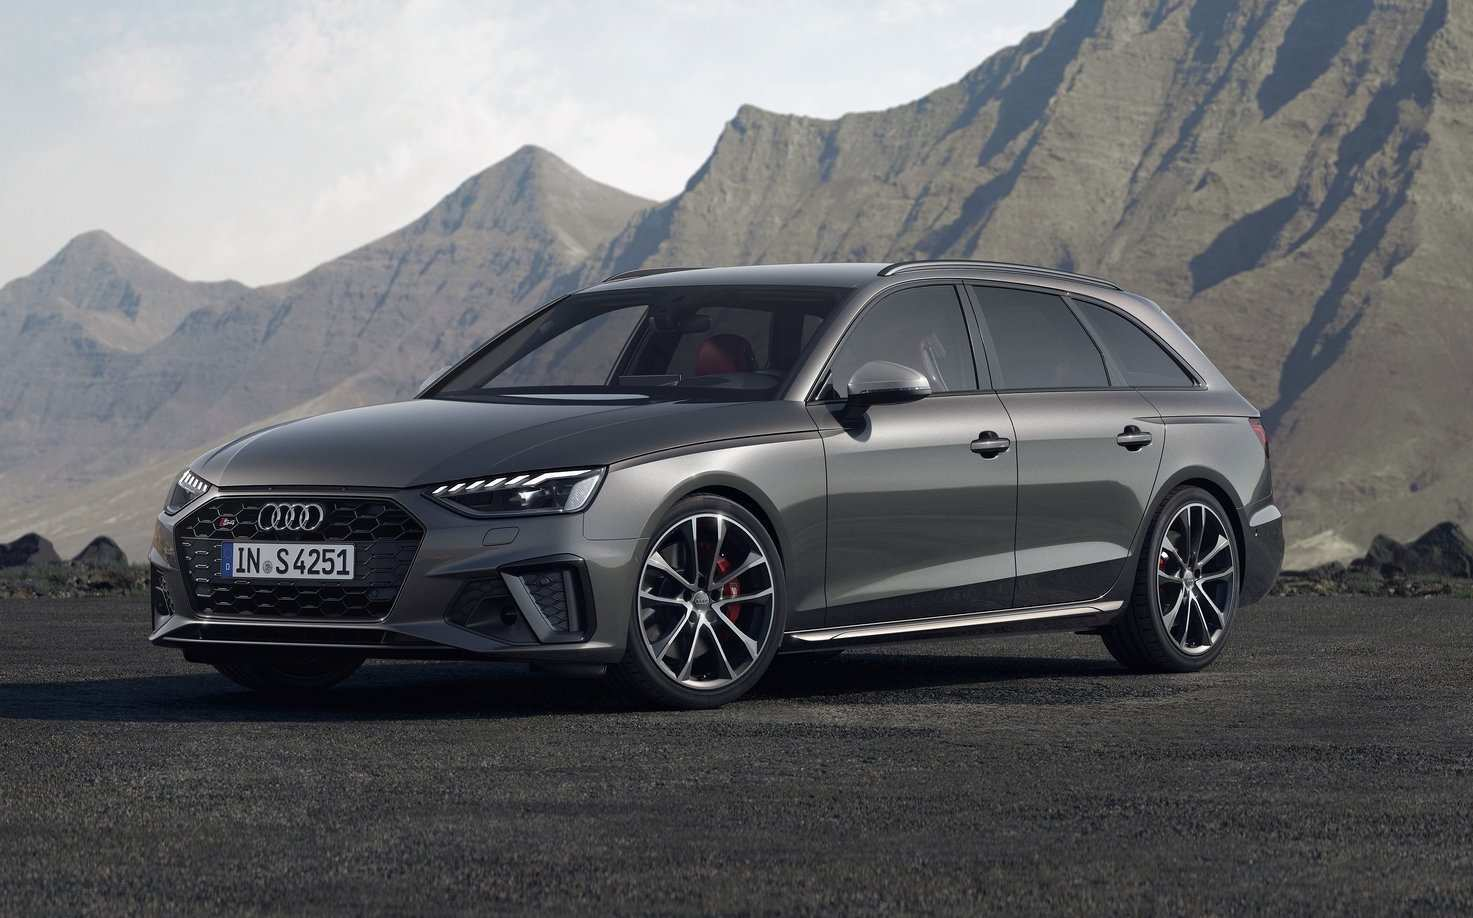 70 All New 2020 Audi S4 Review